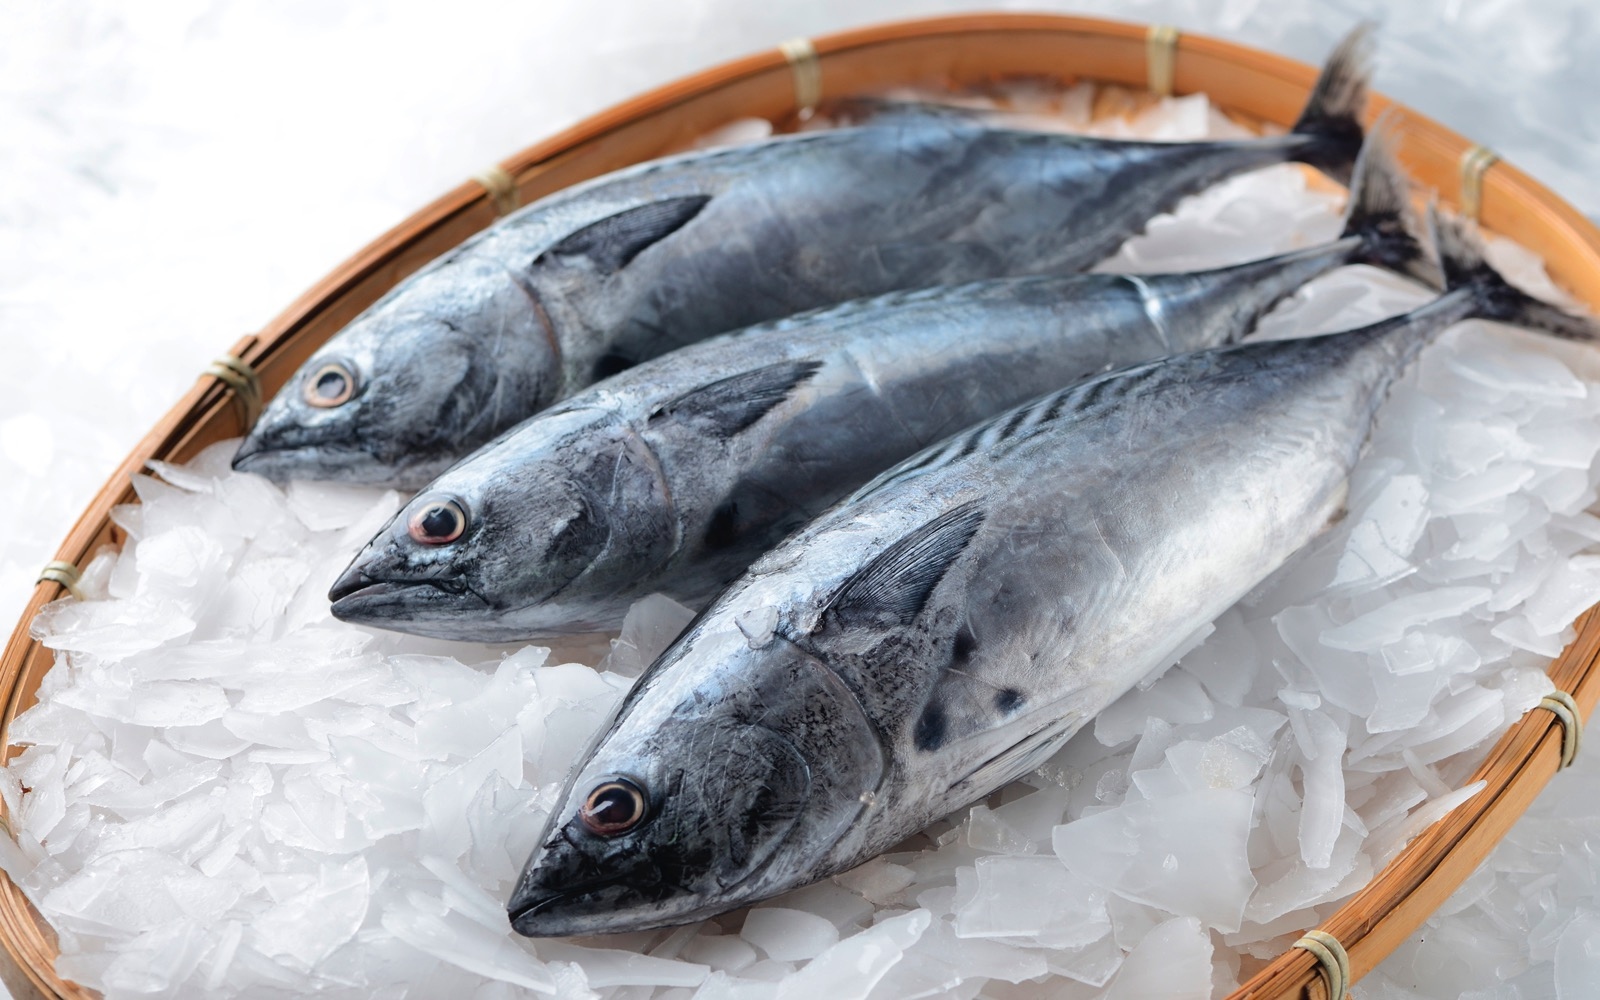 High quality bonito (albacore) . World-Class Ingredients in your Kitchen. Khayyan Specialty Foods, importers, manufacturers and distributors of fine Products from Spain in West New York, NJ.